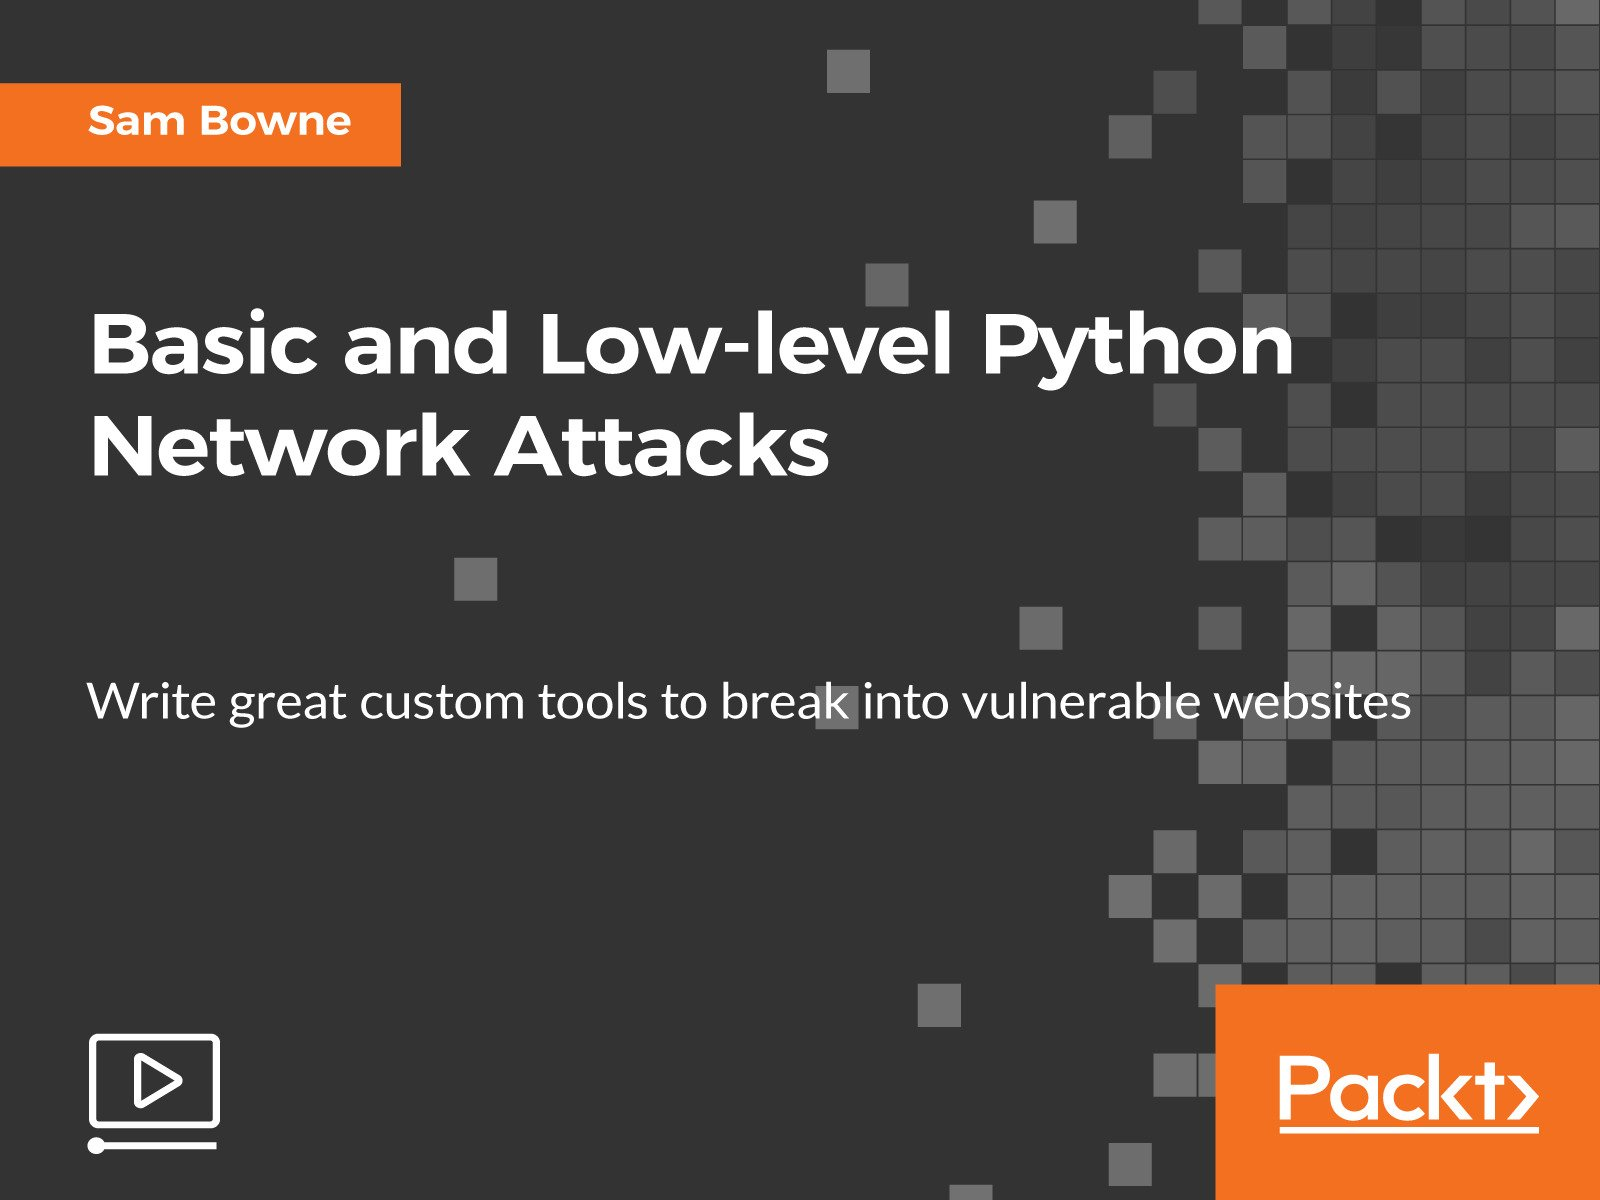 Amazon com: Watch Basic and Low-level Python Network Attacks